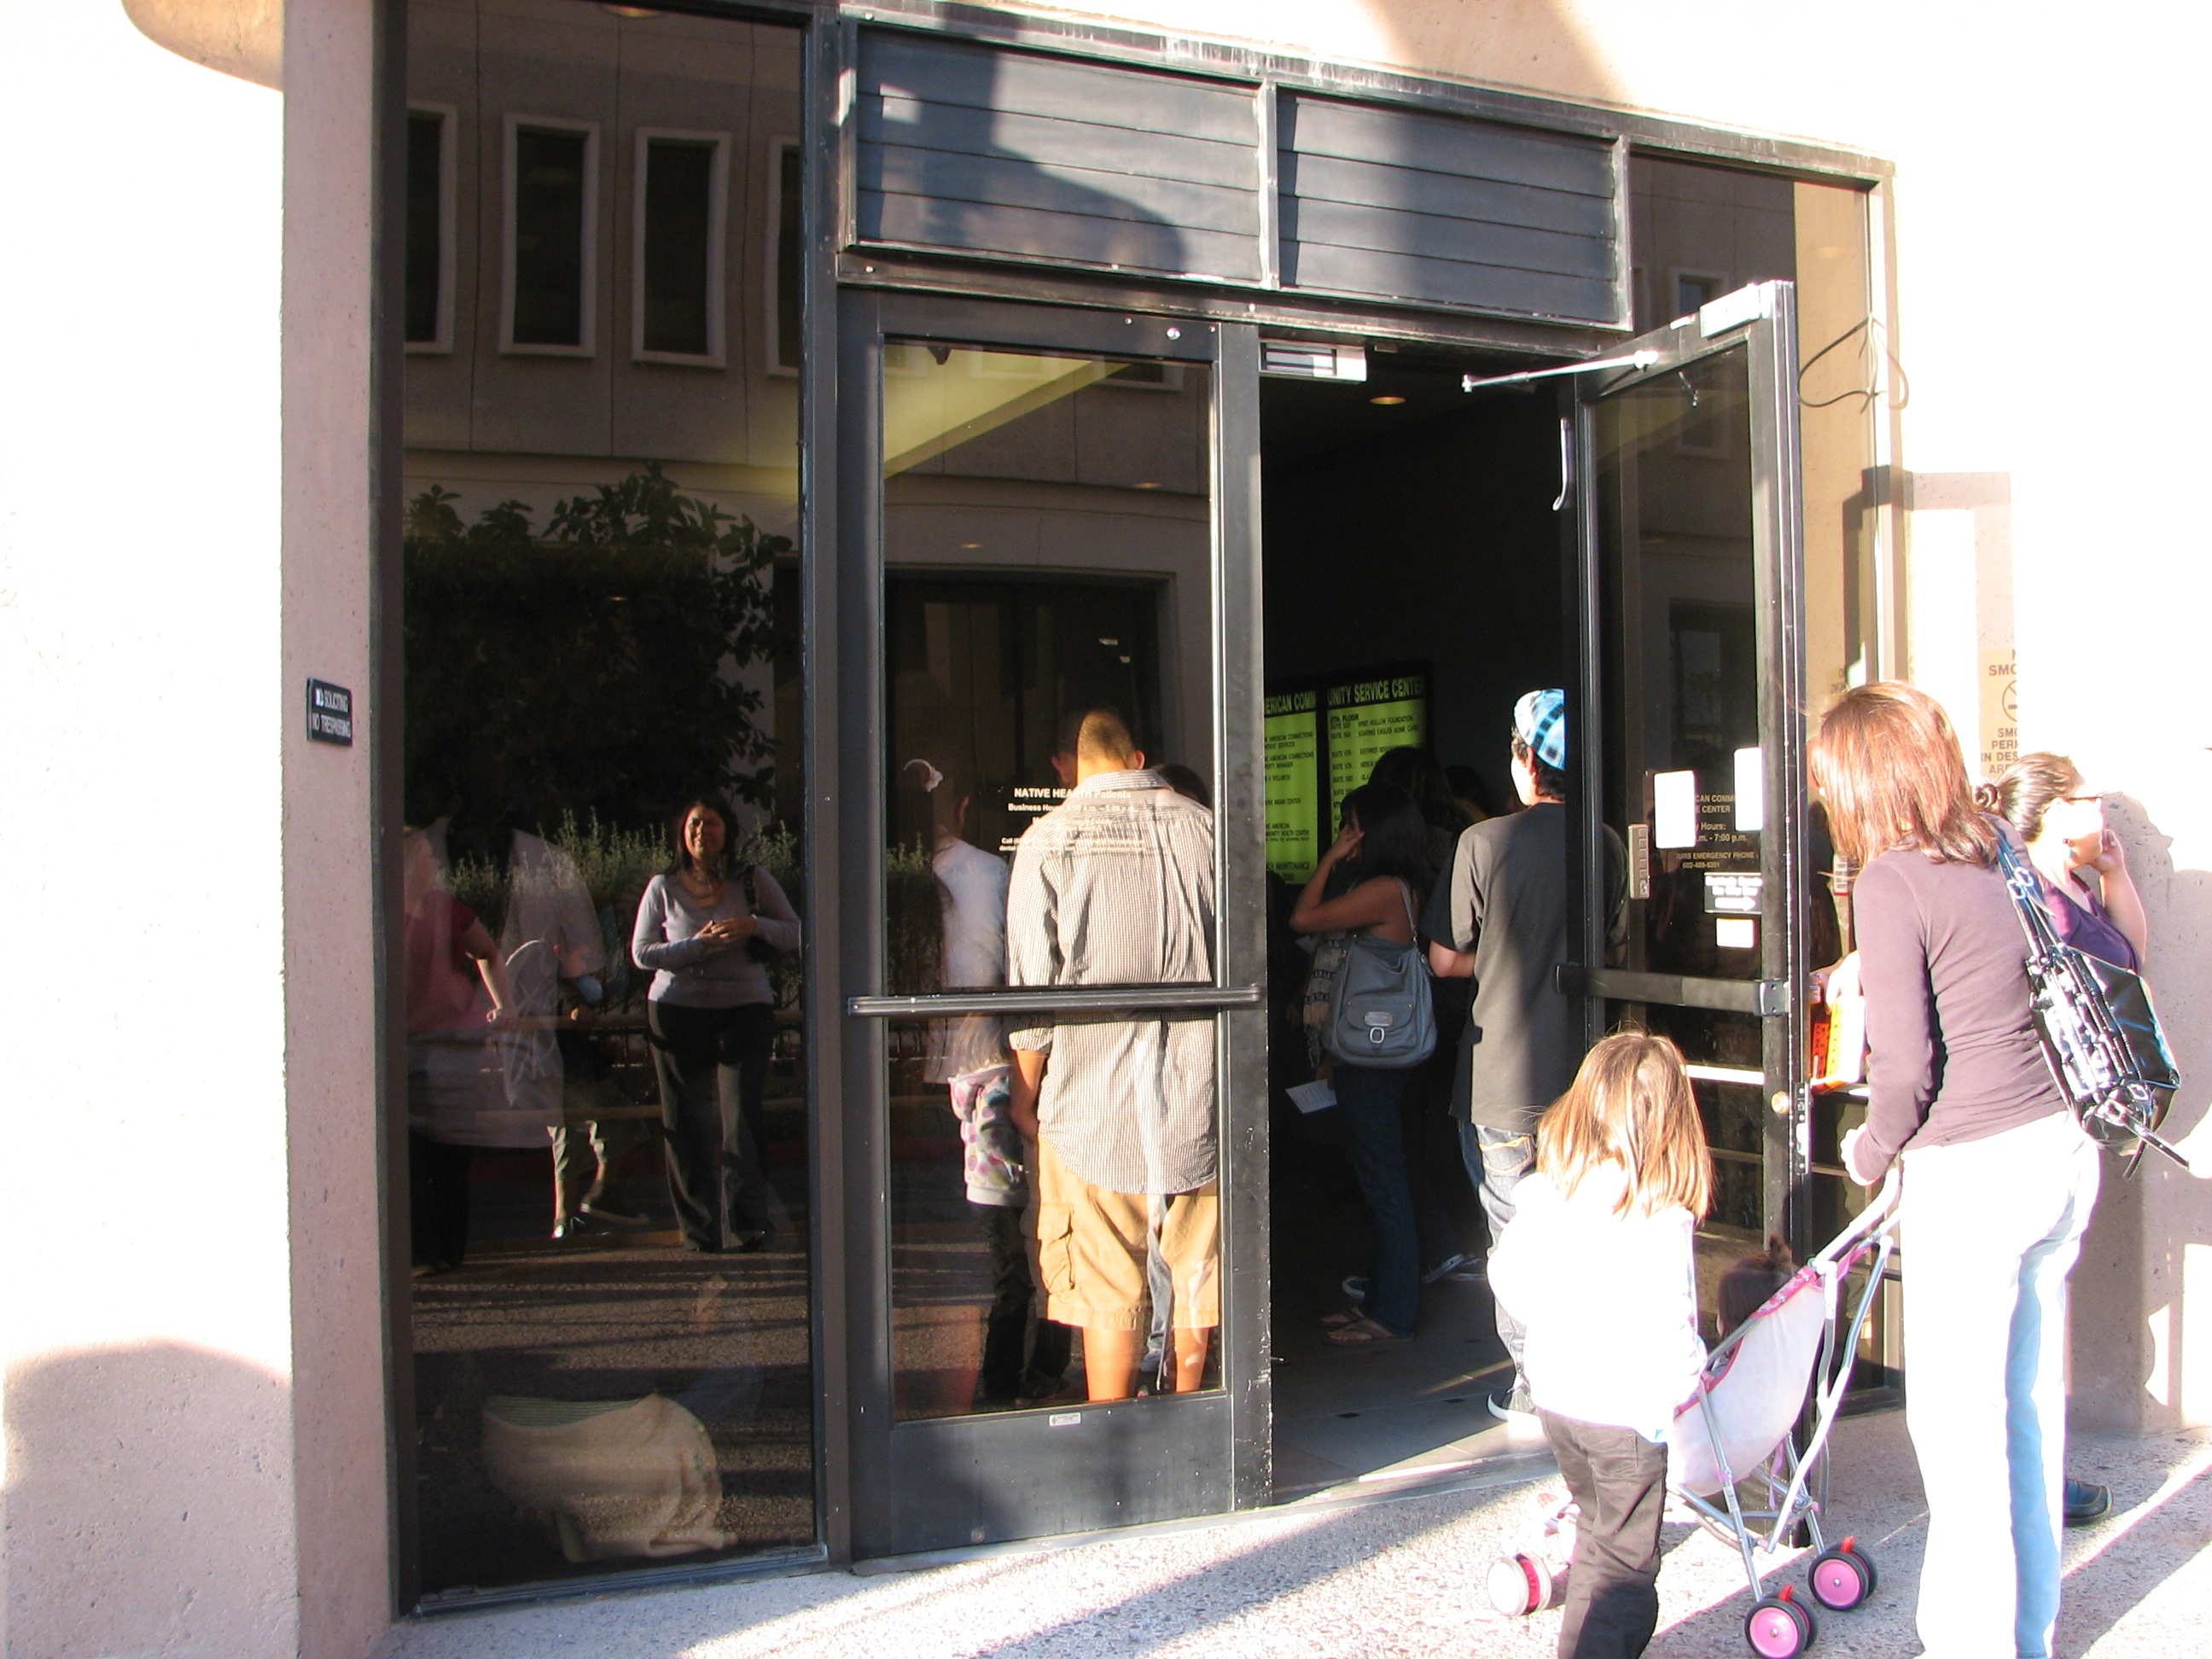 These are the front doors. People are pressed up against the glass. It really was that crowded in there.